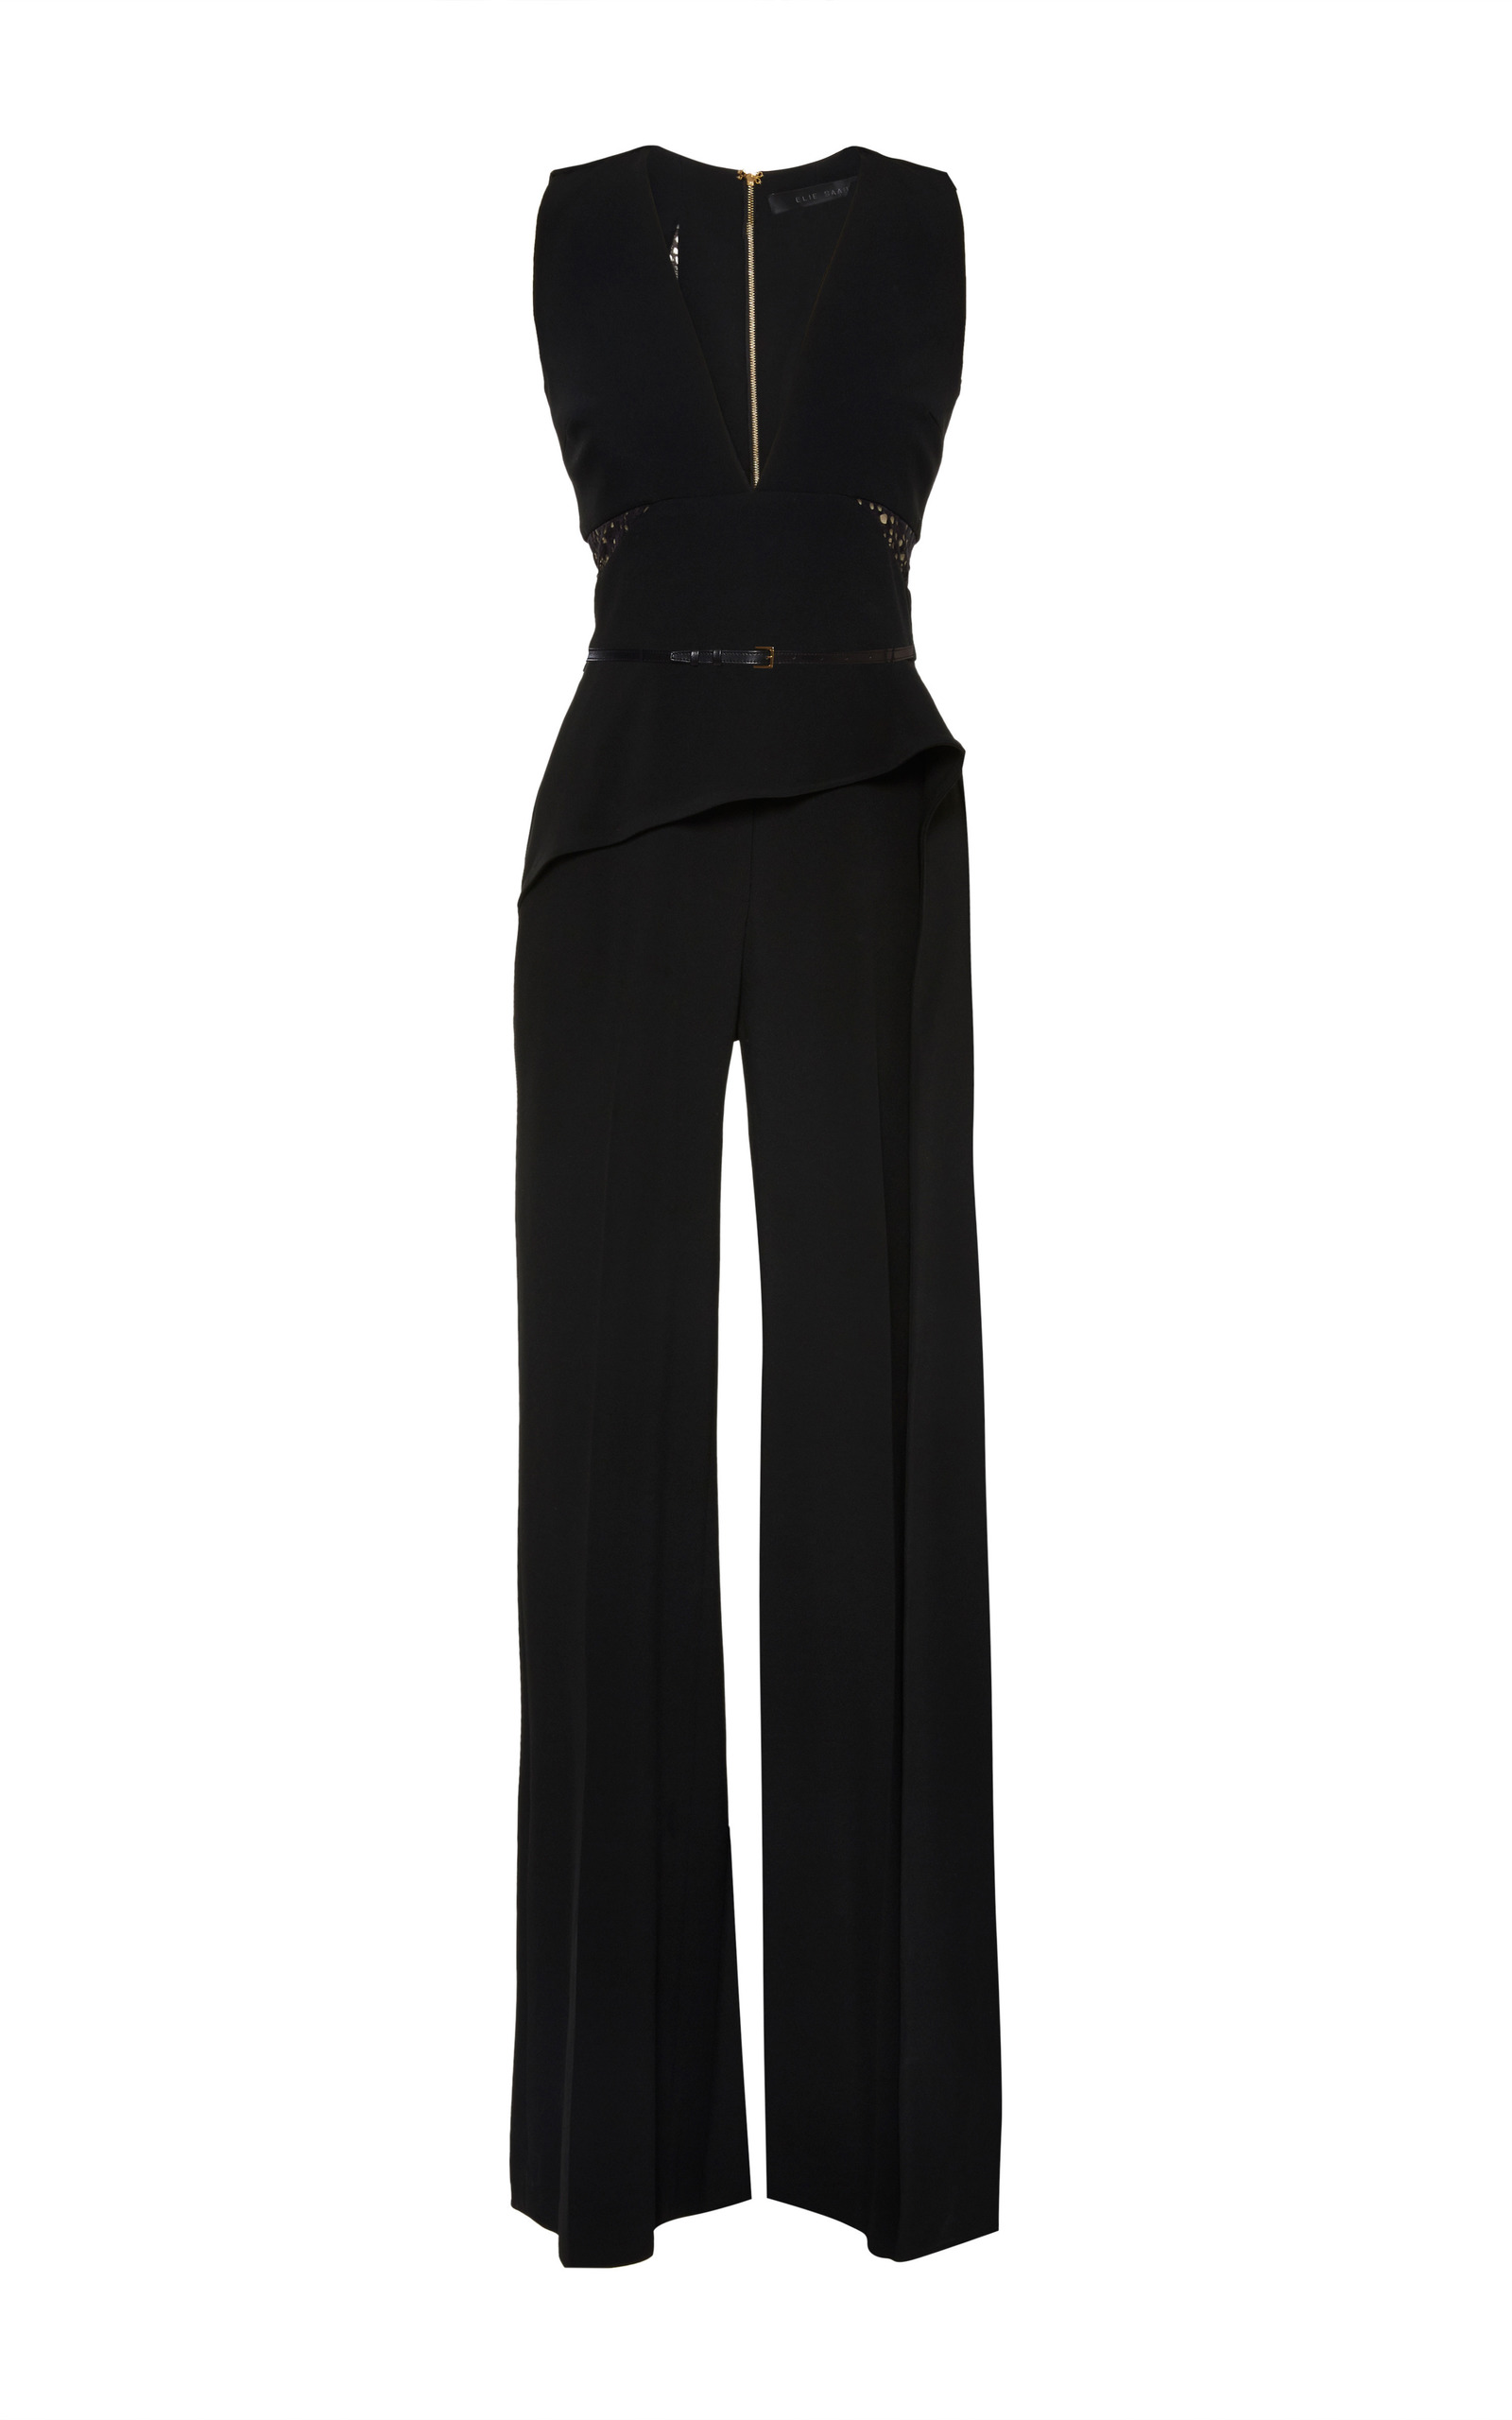 db61f5d4cec6 Black Stretch Cady And Lace Jumpsuit by Elie Saab